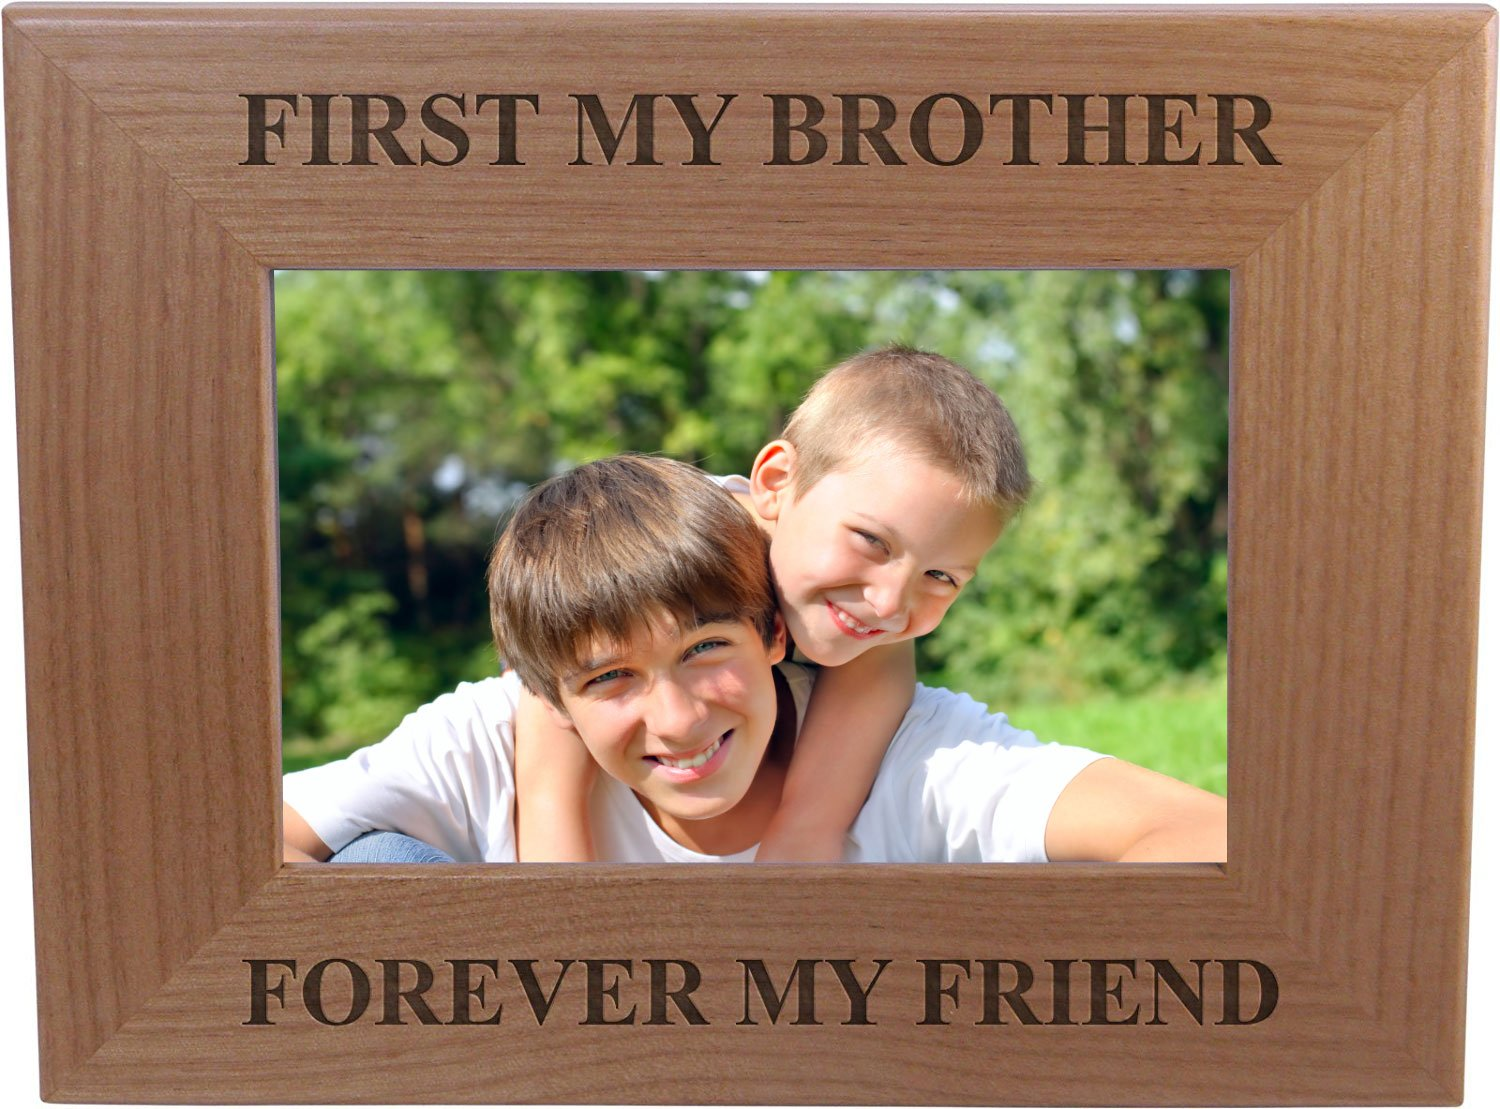 One of The Affordable Personalized Christmas Gifts for Brothers 2021